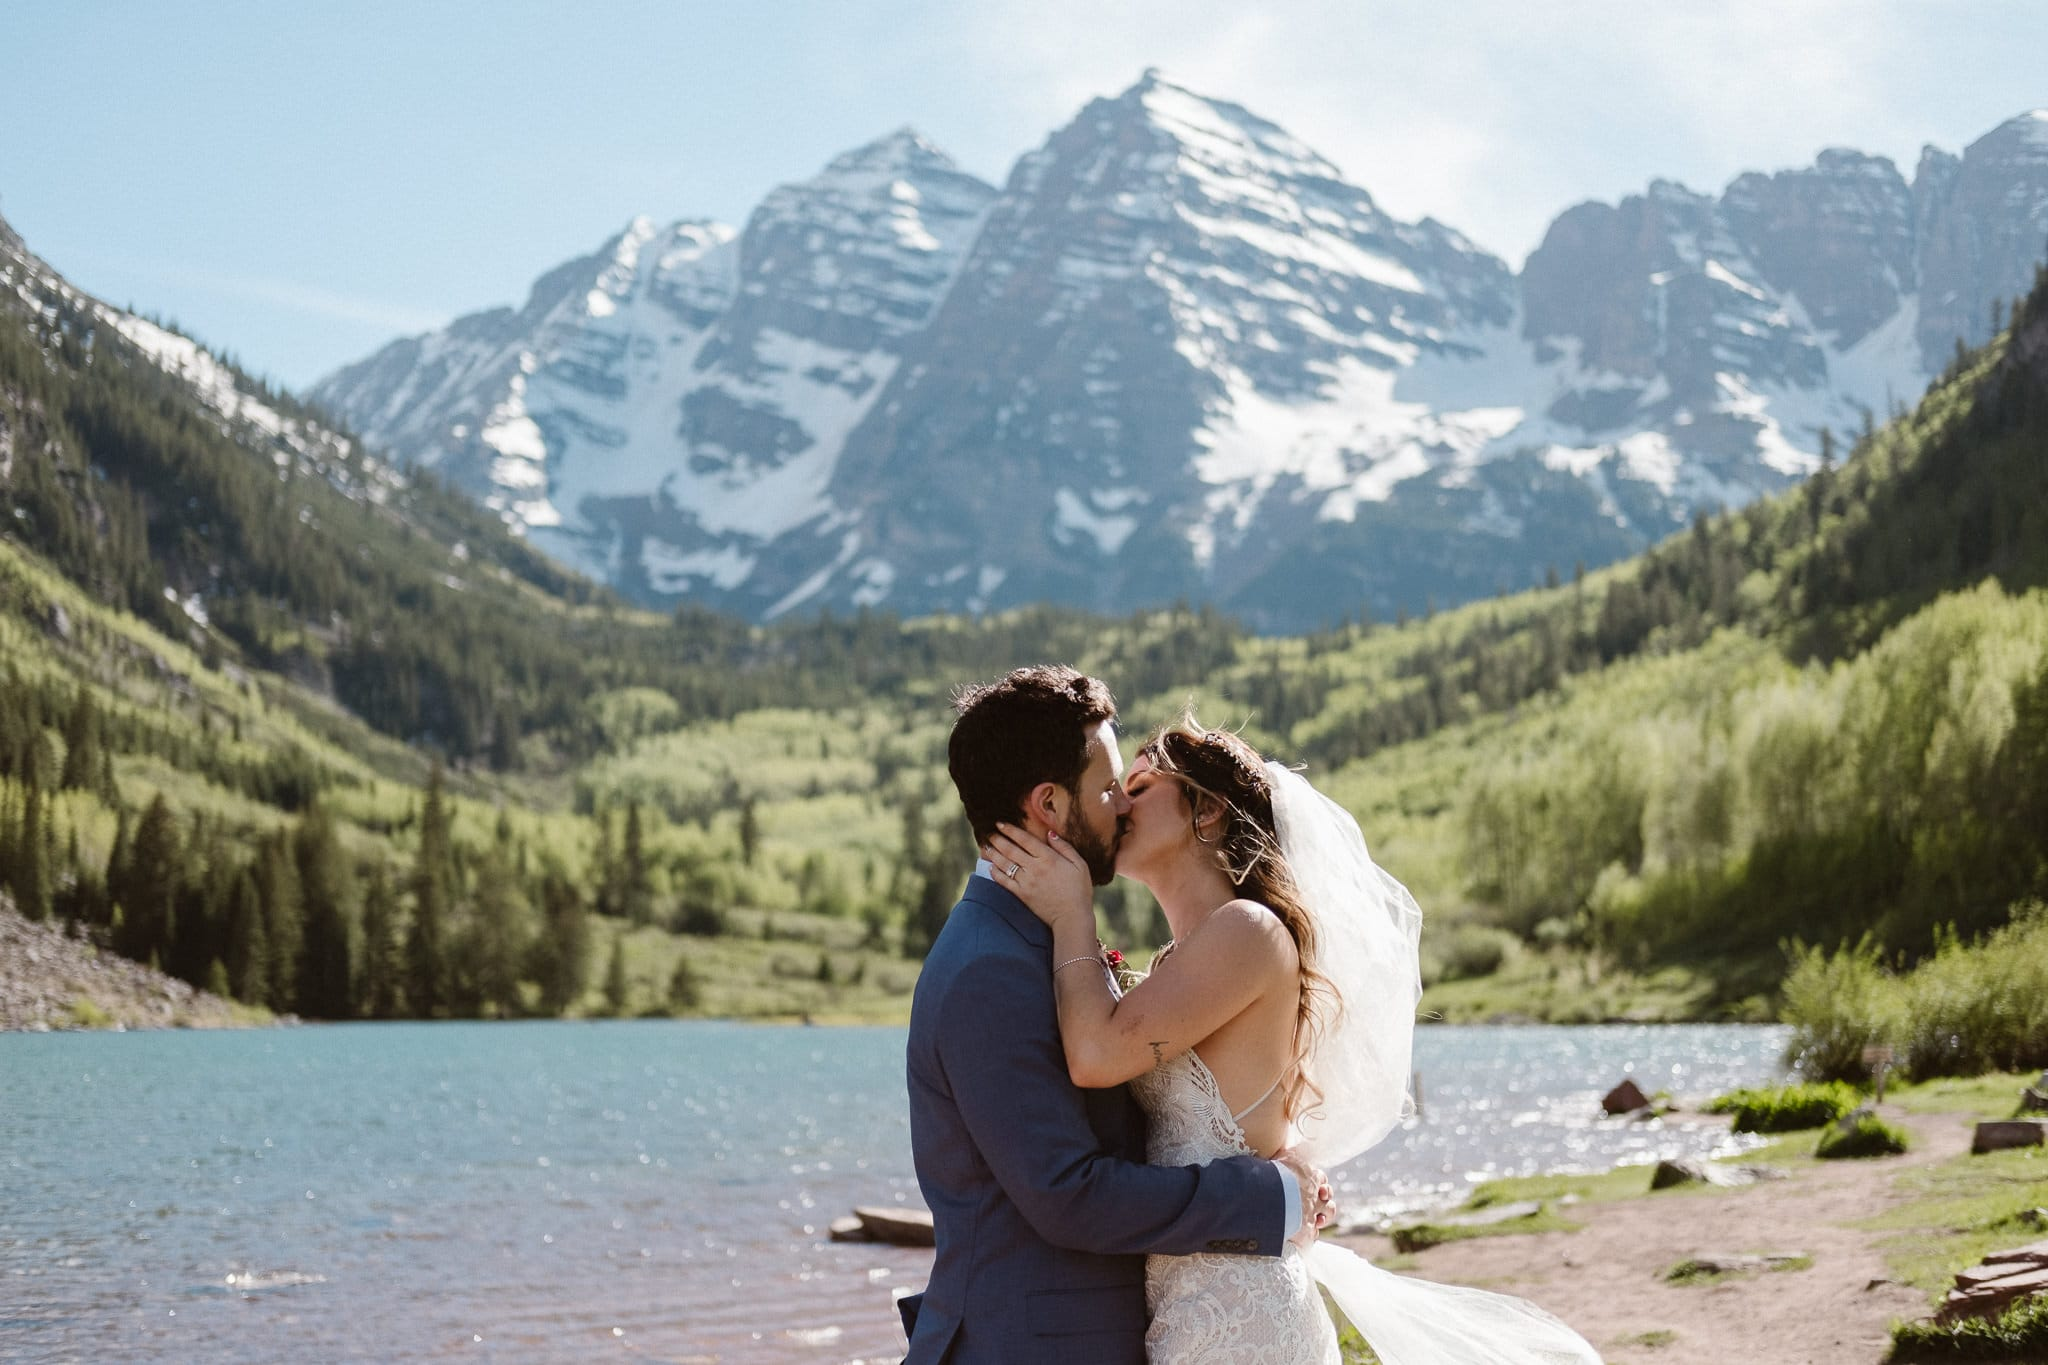 Maroon Bells Amphitheater elopement, Aspen wedding photographer, Colorado adventure elopement, bride and groom kissing at alpine lake